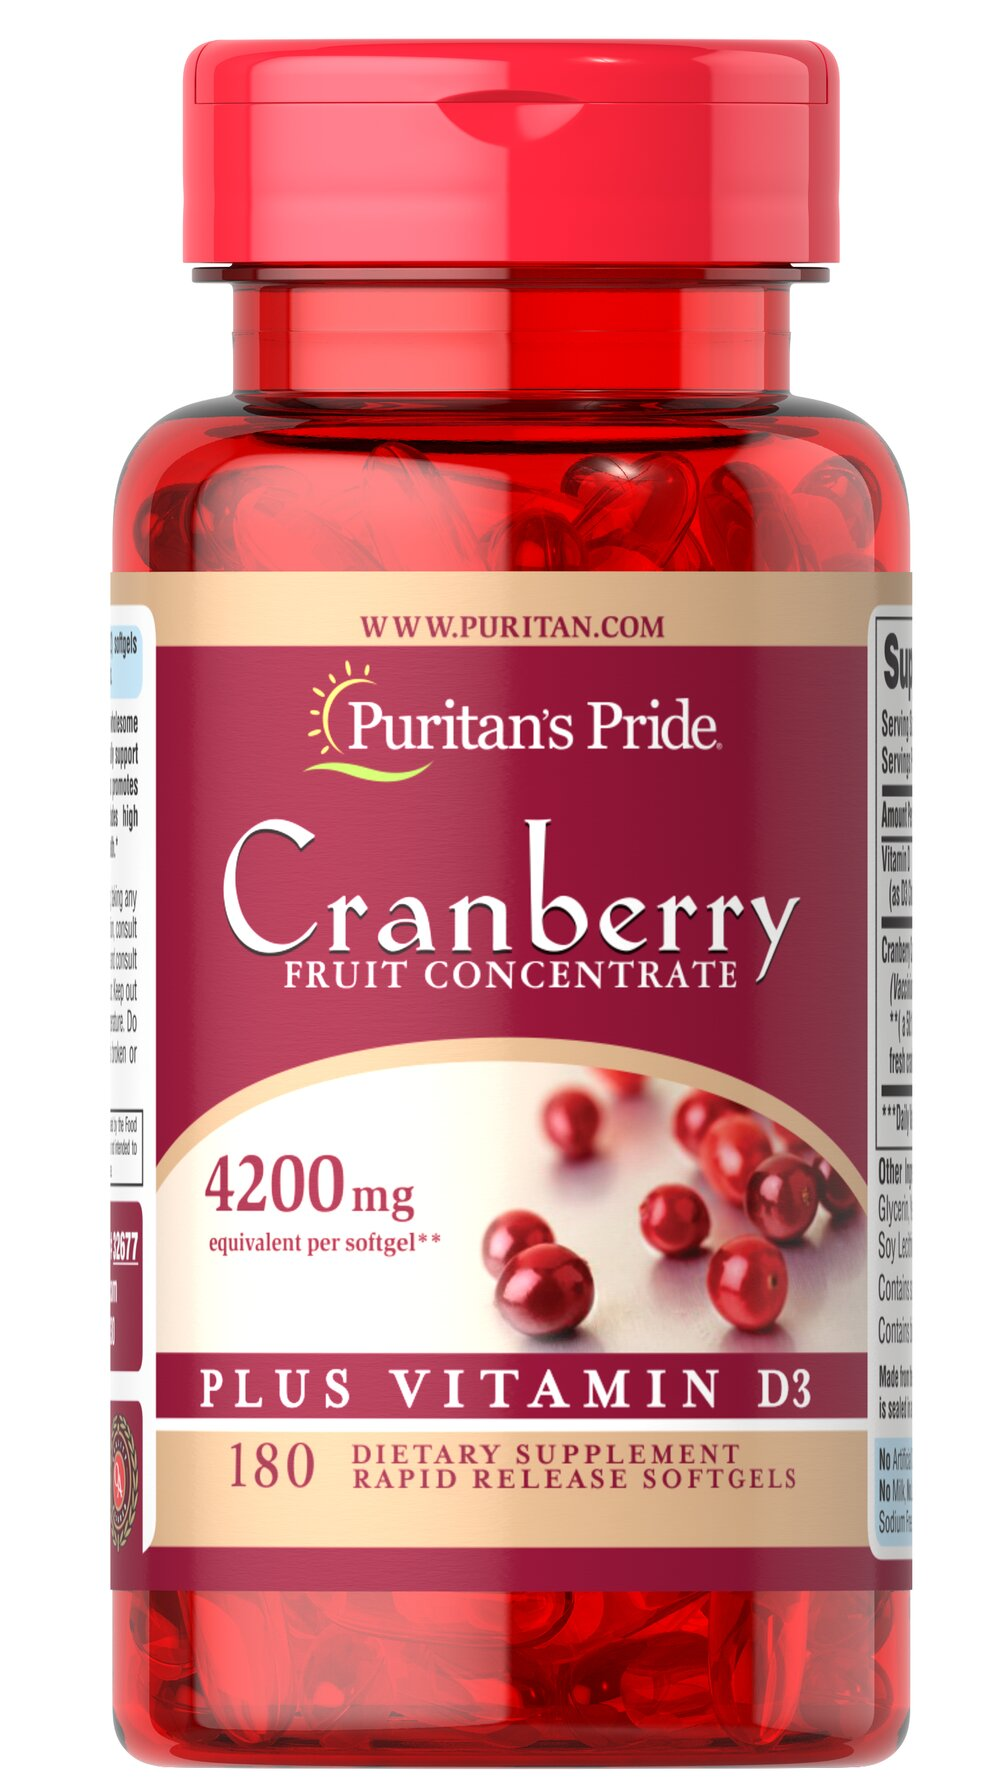 Cranberry Fruit Concentrate Plus Vitamin D3 <p>Our Cranberry Fruit Concentrate Plus Vitamin D3 has the wholesome goodness of cranberries to nutritionally support urinary tract health as well as promote bladder health.** Each serving contains a 50:1 concentrate, the equivalent of 8,400 mg of fresh cranberries. Also includes 1000 IUs of high potency Vitamin D3 per serving to support bone and breast health.** Includes 180 rapid release softgels.</p><p>• Has the wholesome goodness